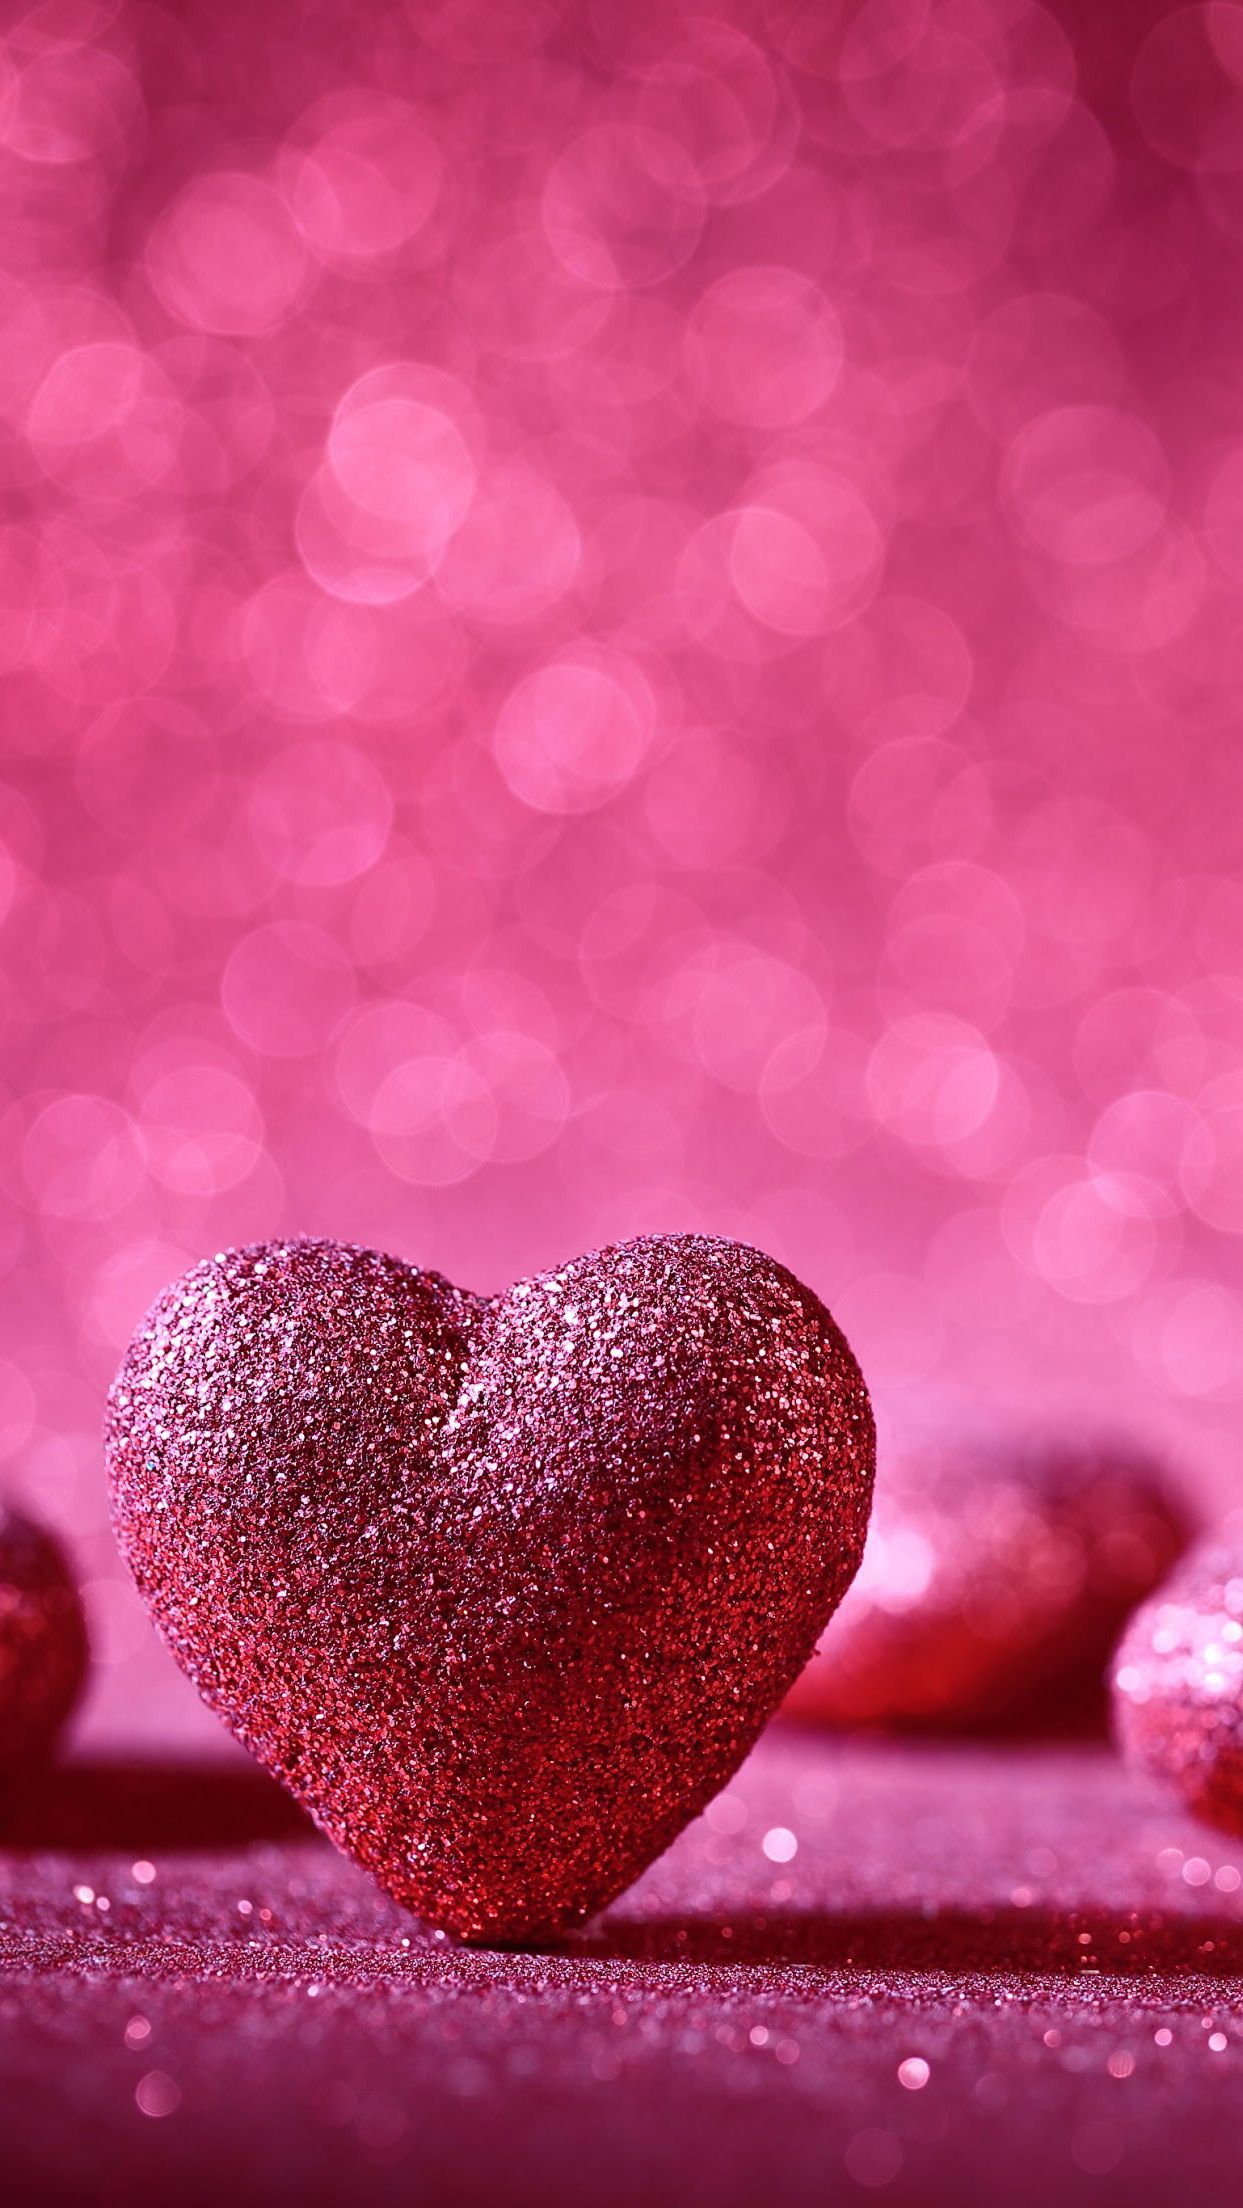 Hd Mobile Wallpaper Glitter Heart Pop Out Pinterest Sfondi